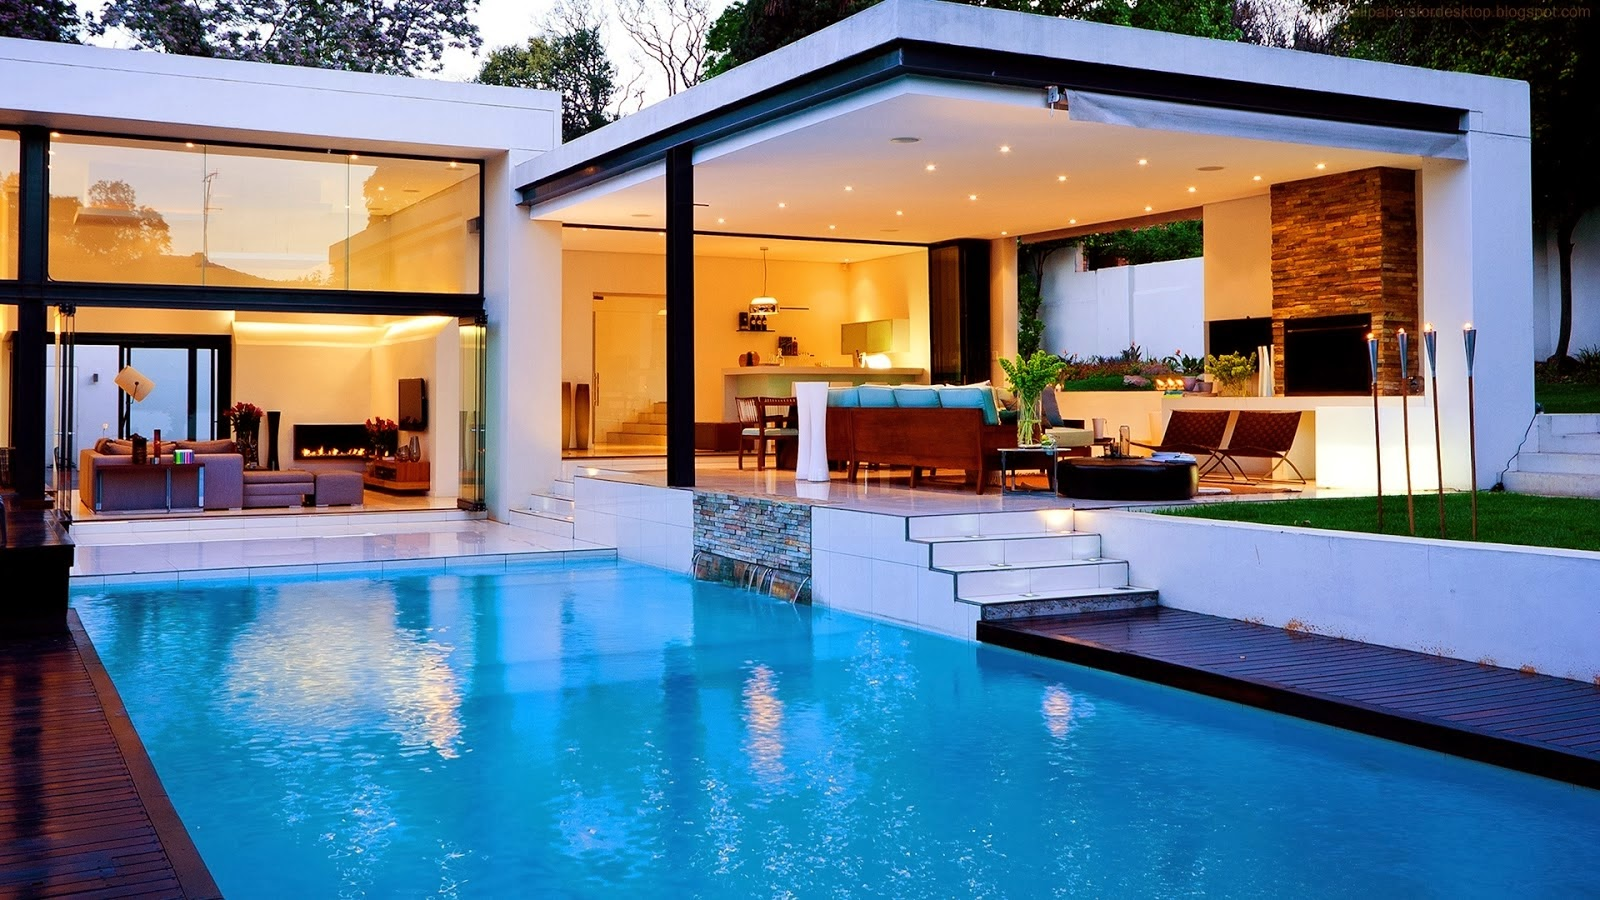 Interior homes hd pictures